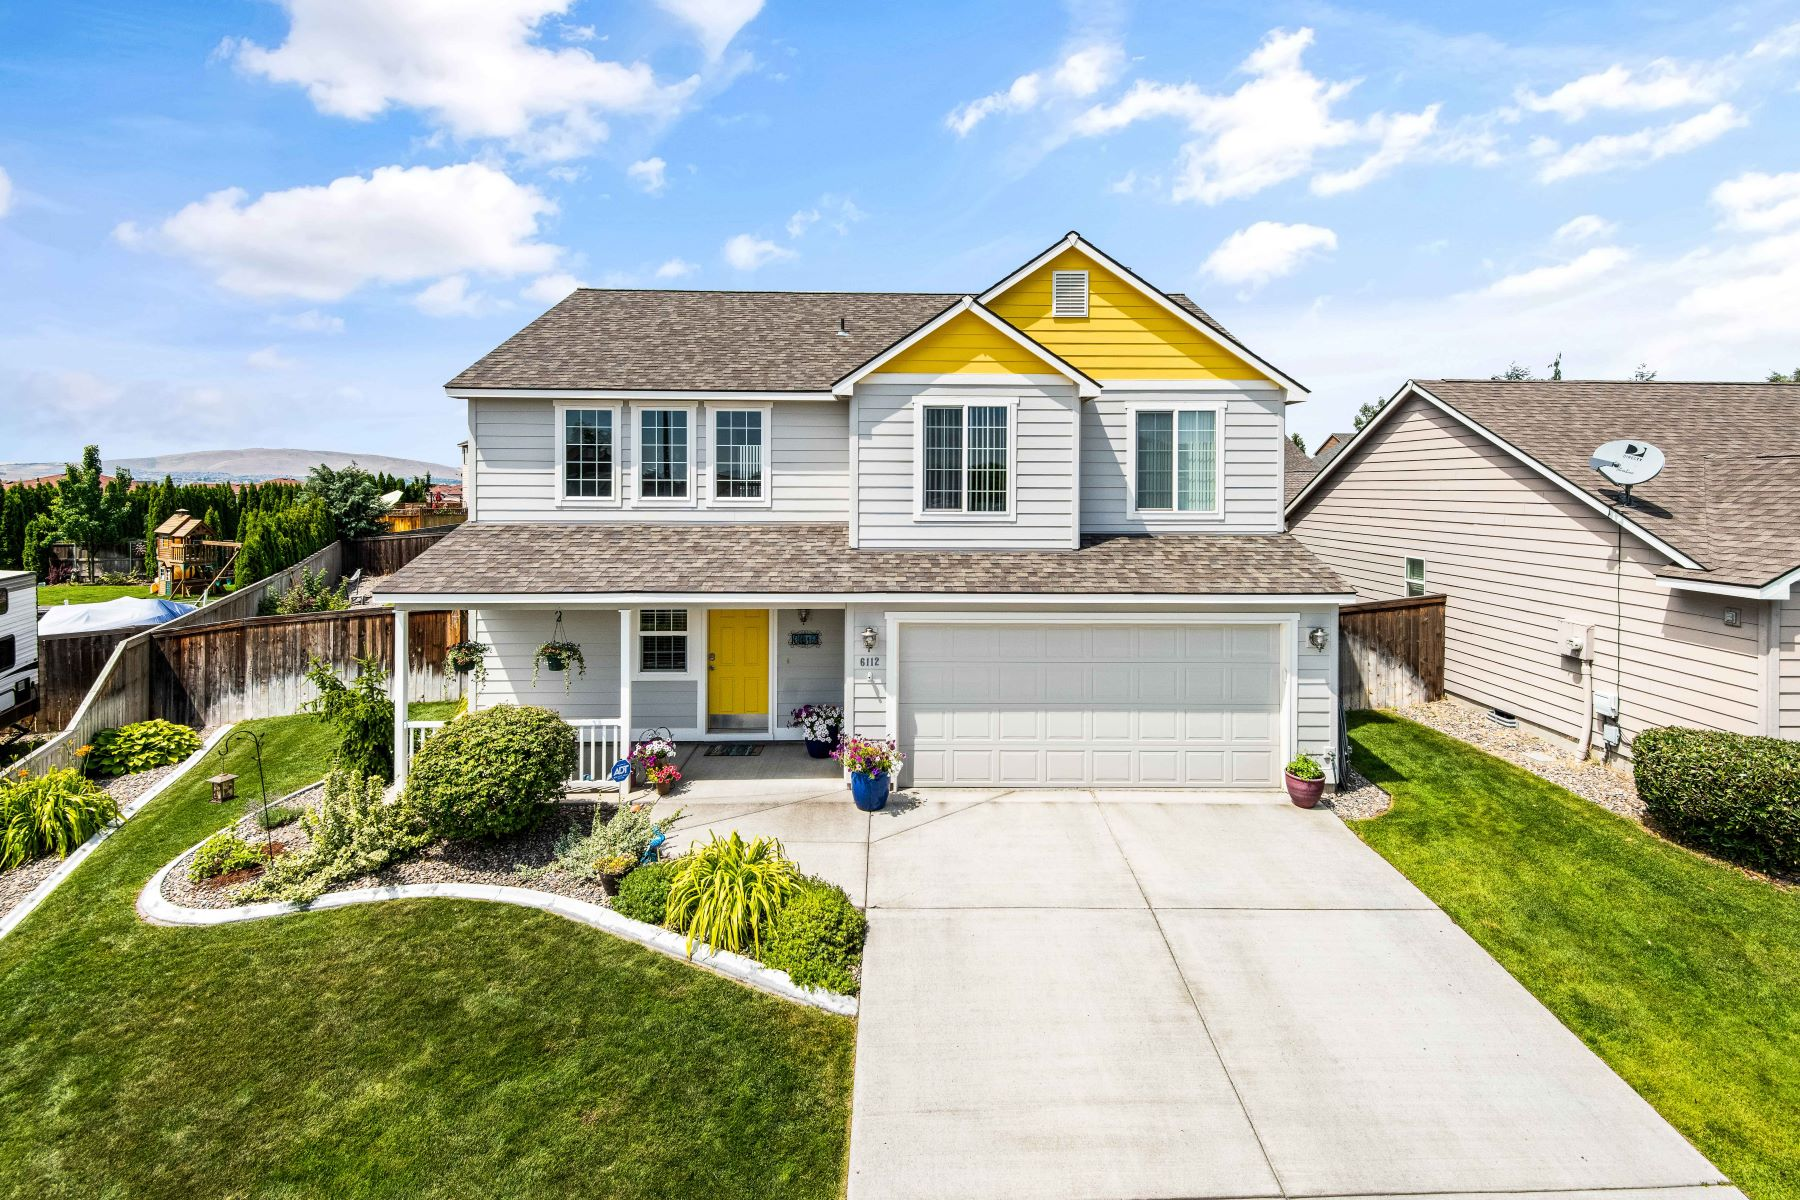 Single Family Homes for Sale at One Sweet Home! 6112 Cavendish Court Pasco, Washington 99301 United States